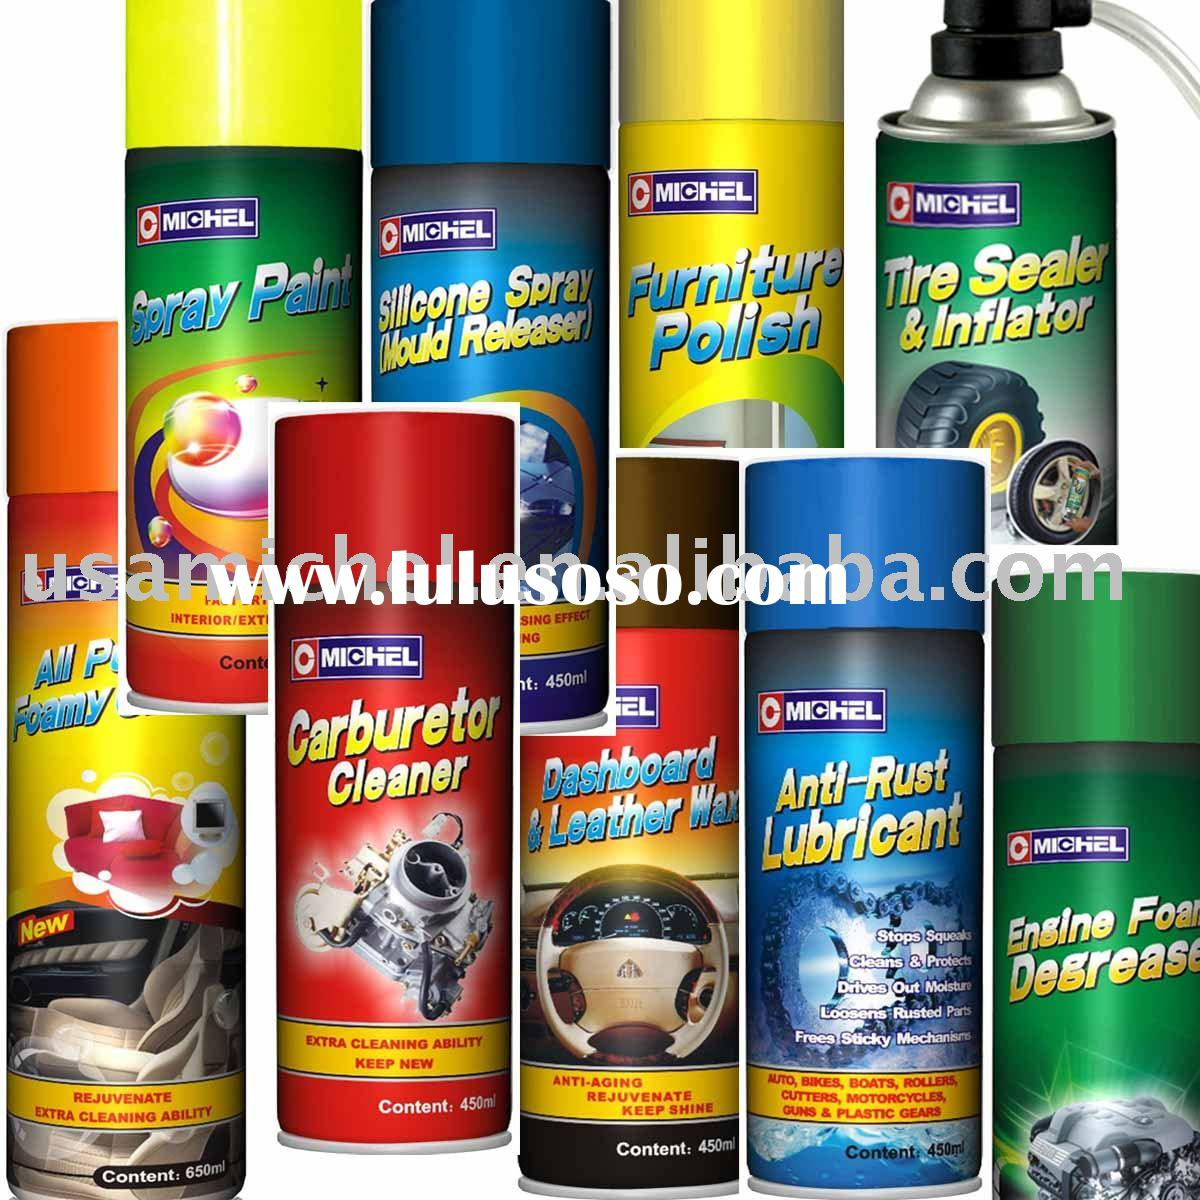 Car Care Products, Car Maintenance Items, Car Cleaning & Protecting Series Products, 450ml and 6